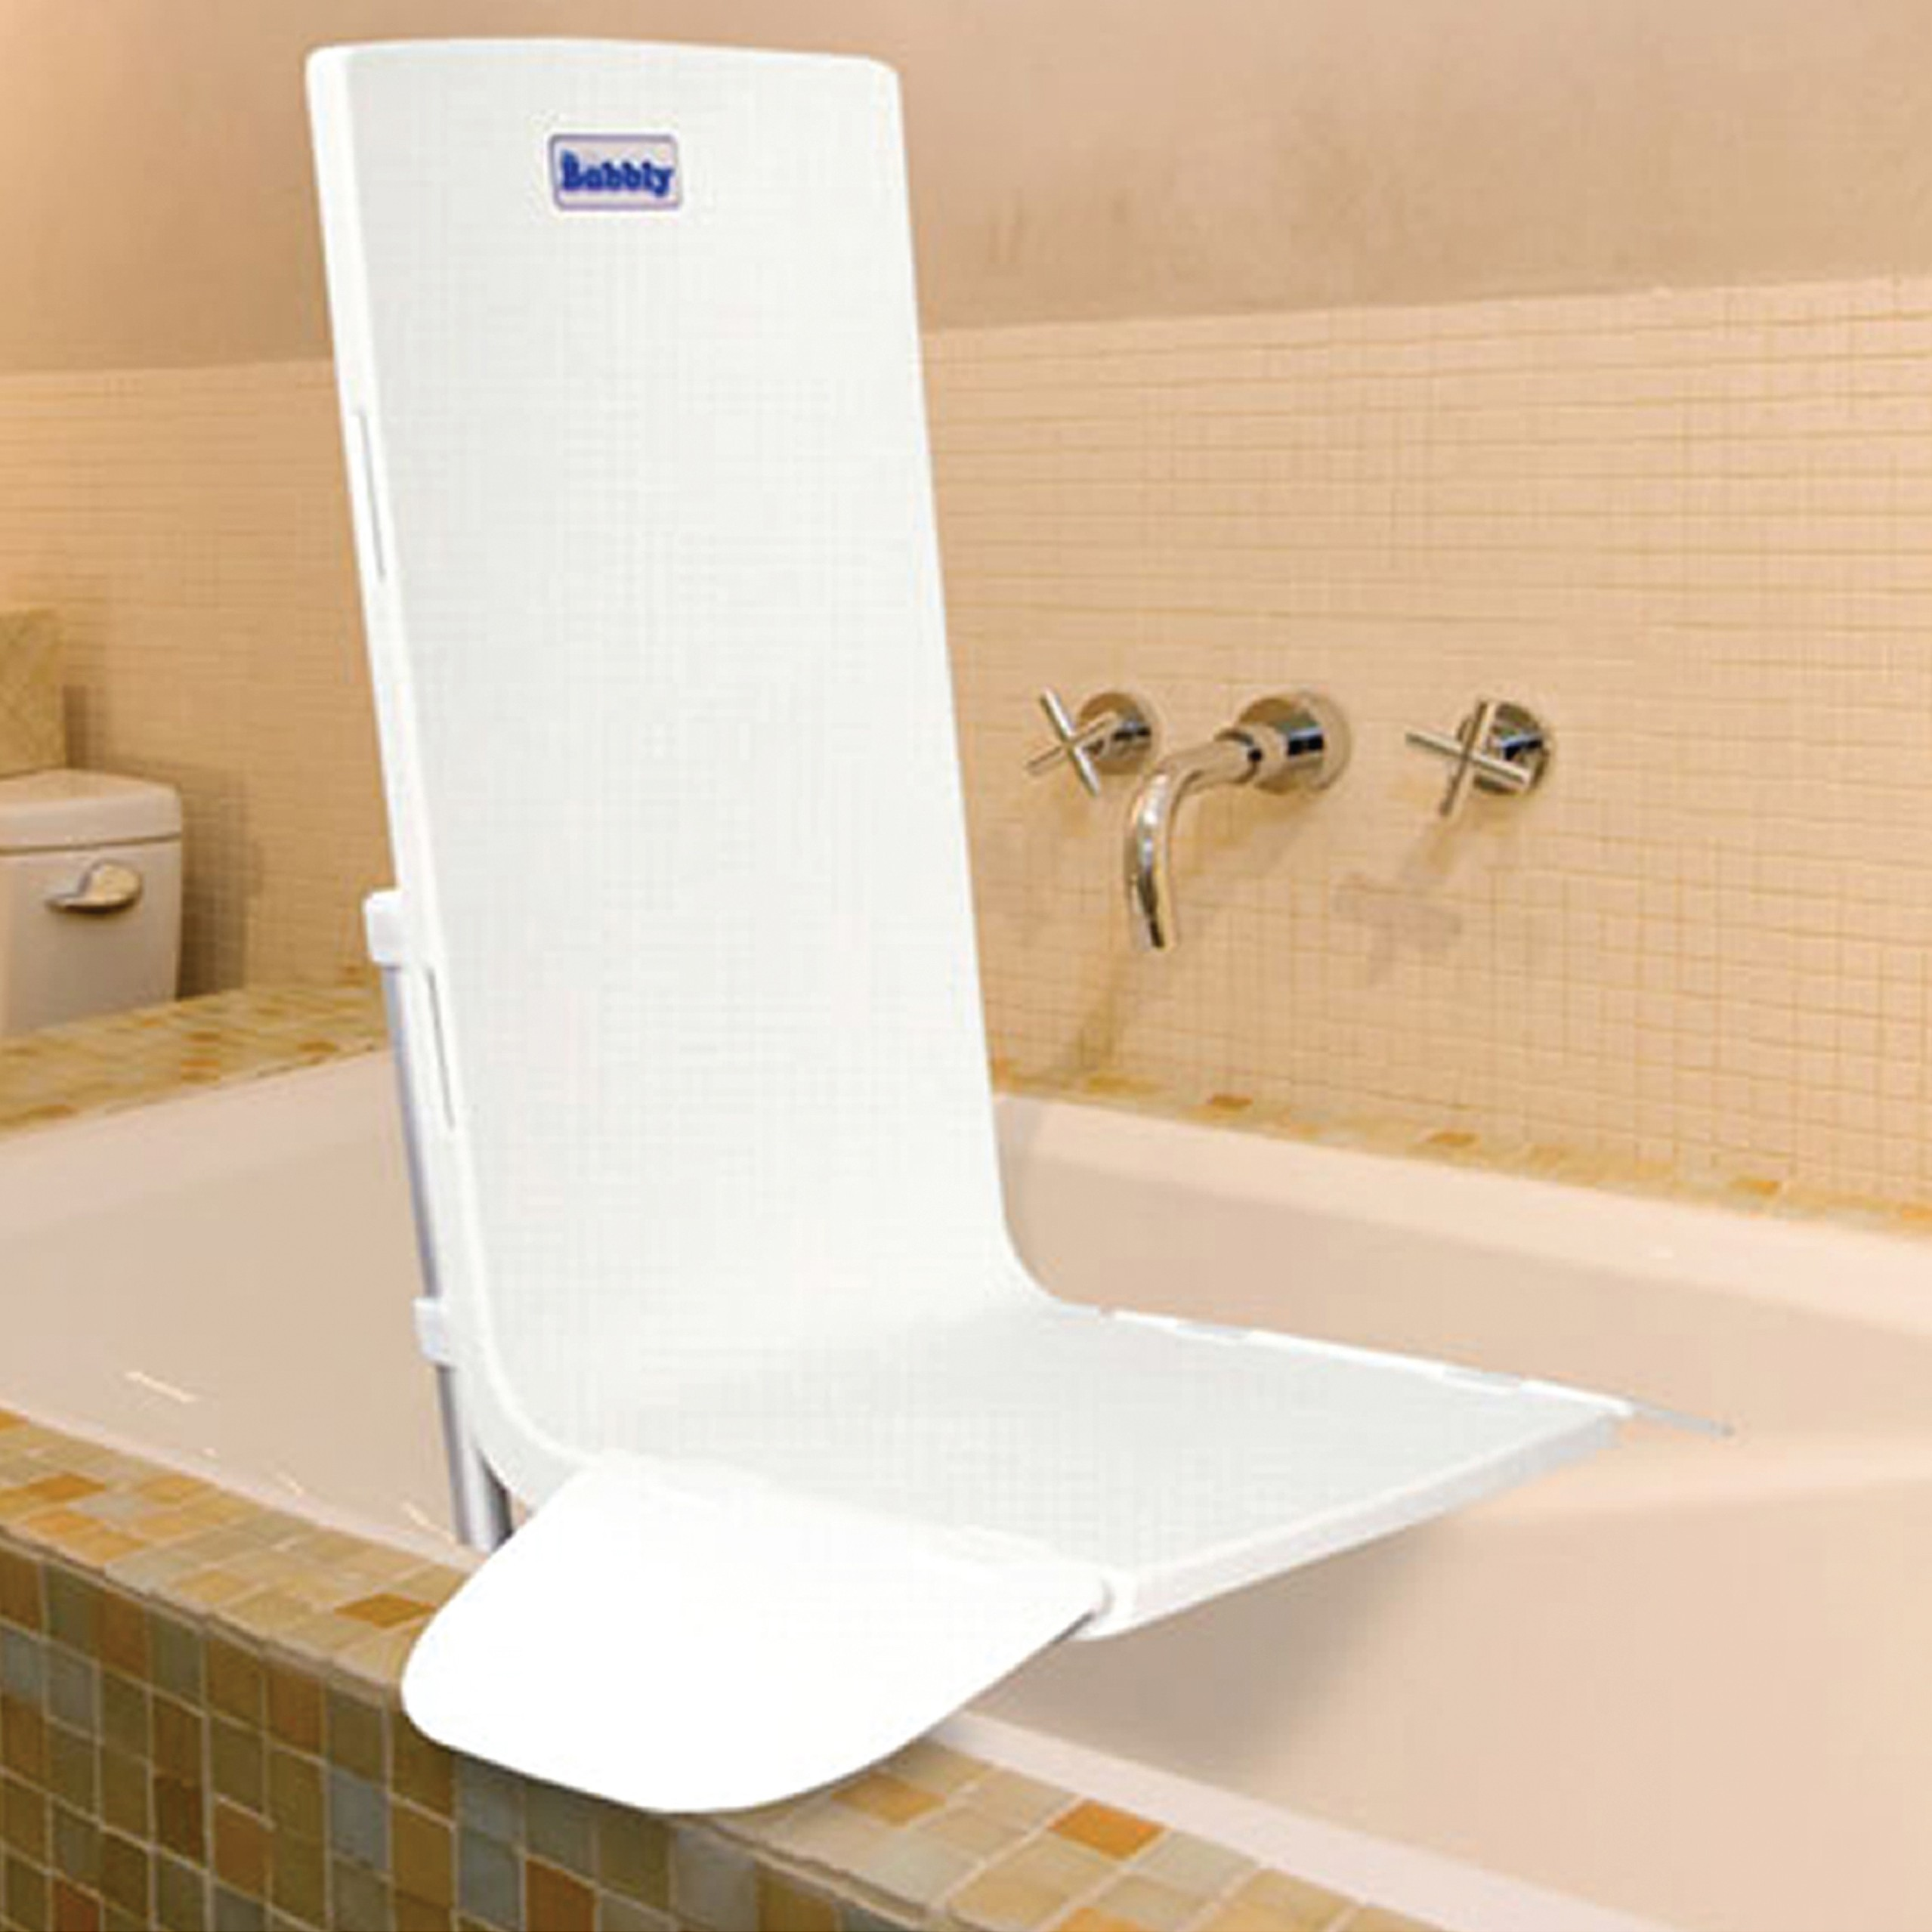 Living Well HME | Bathtub Lifts - AquaJoy Bath Lift Made By Drive ...